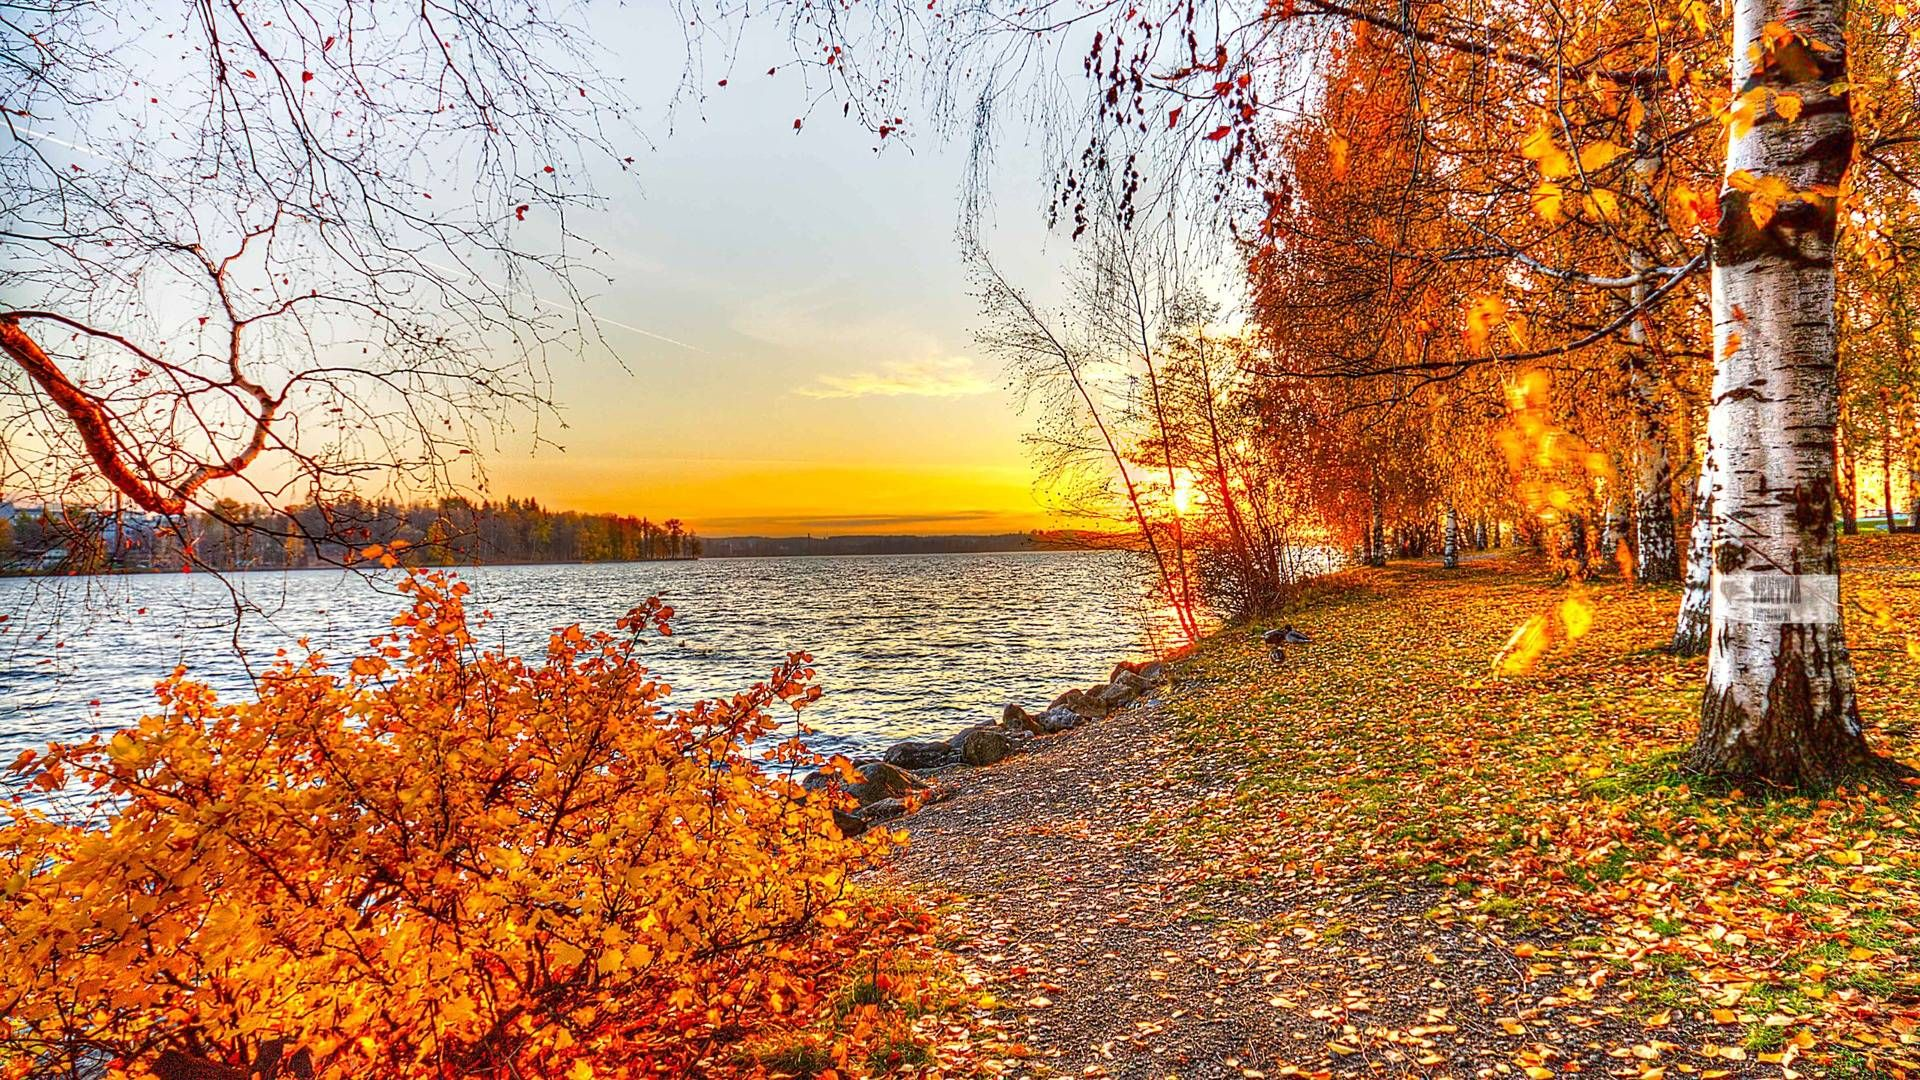 Autumn Landscape wallpaper 819446 Desktop wallpaper